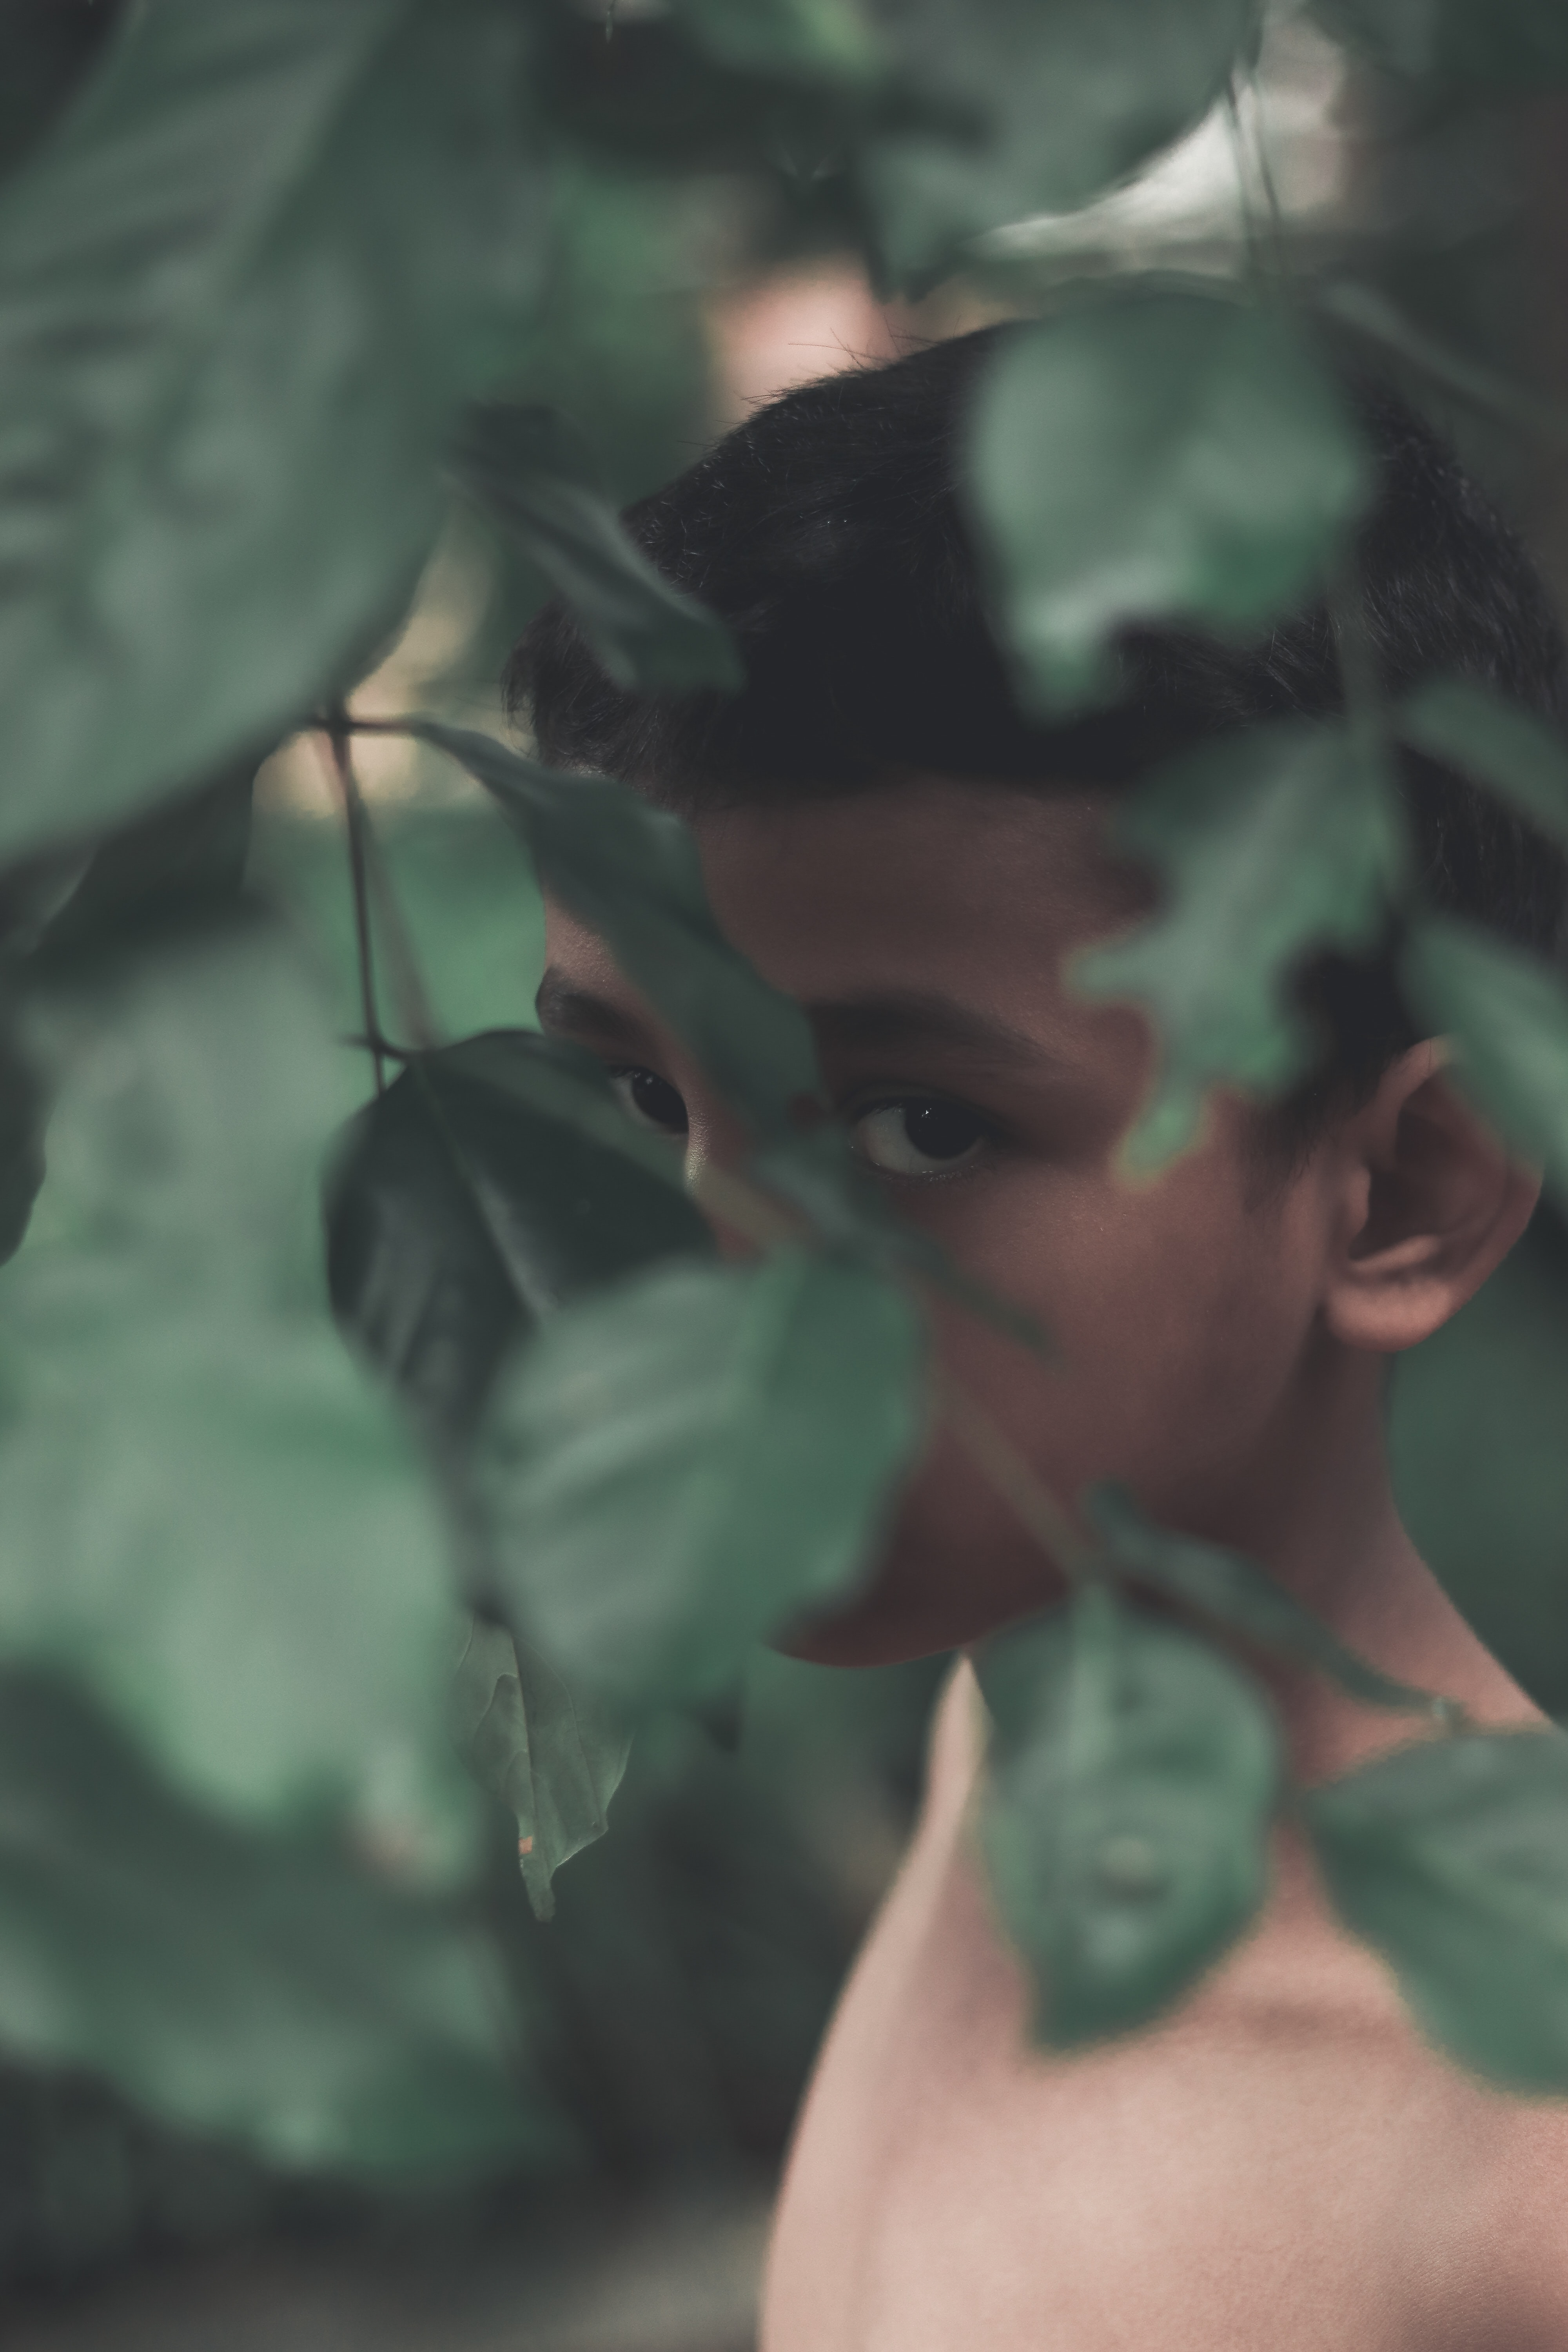 topless boy behind green leafed plant during daytime